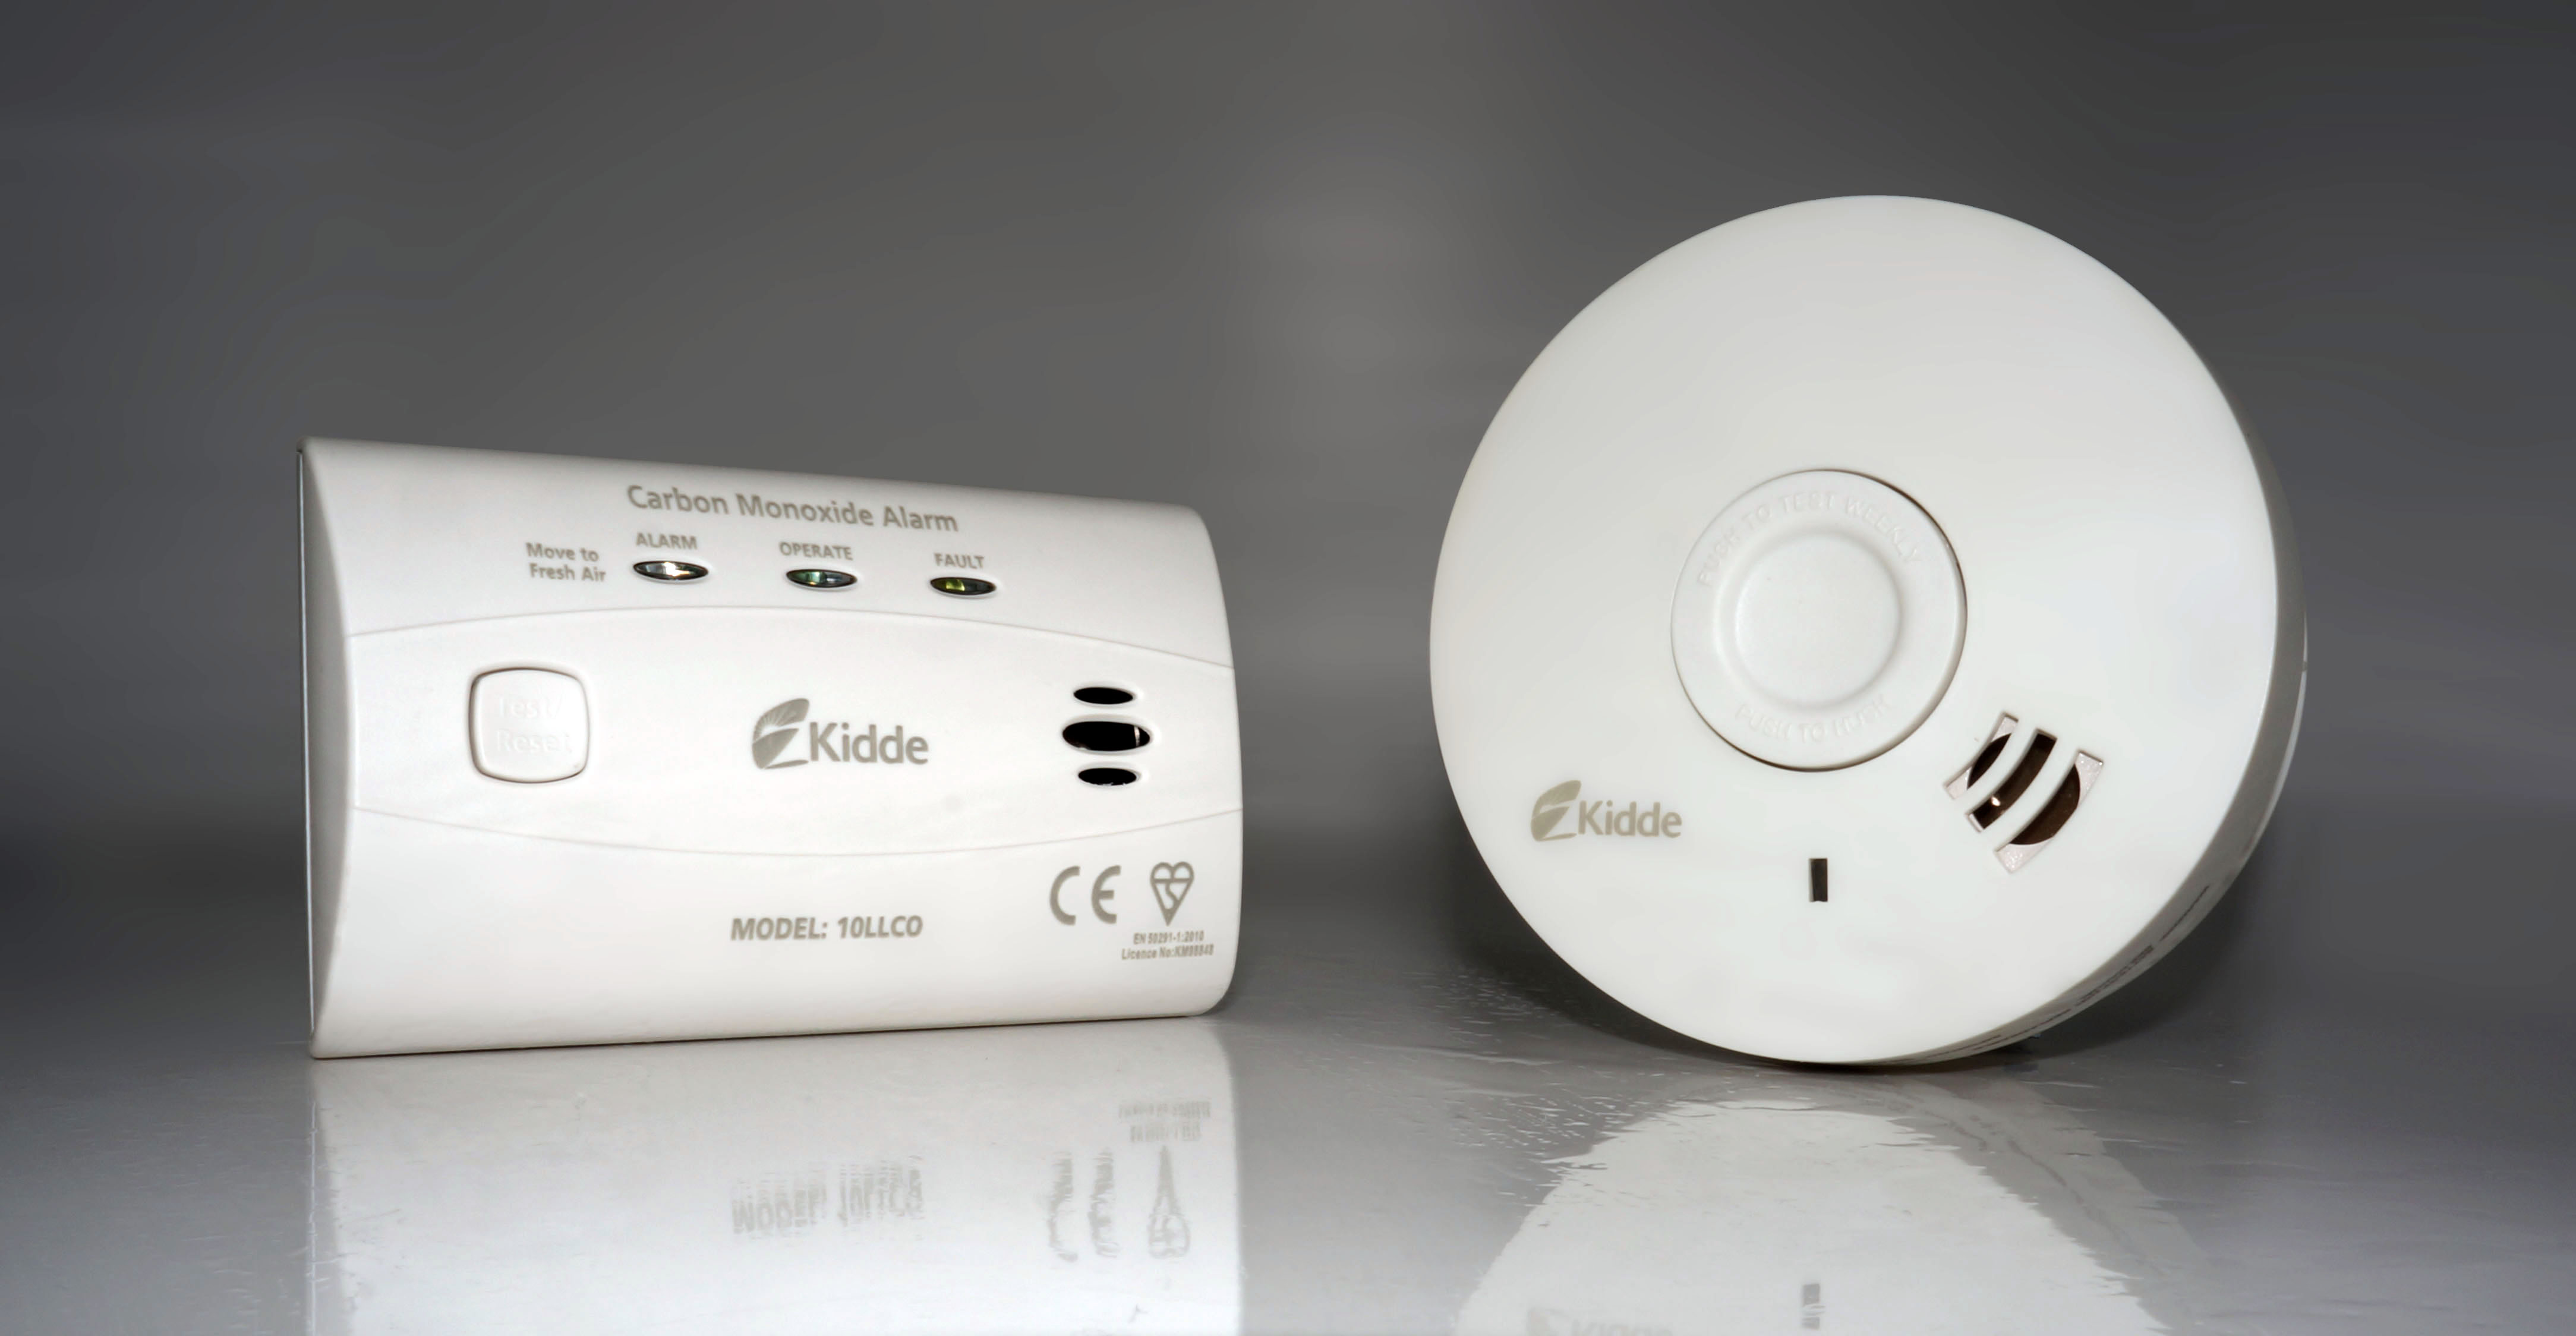 Kidde 10-year CO and smoke alarms